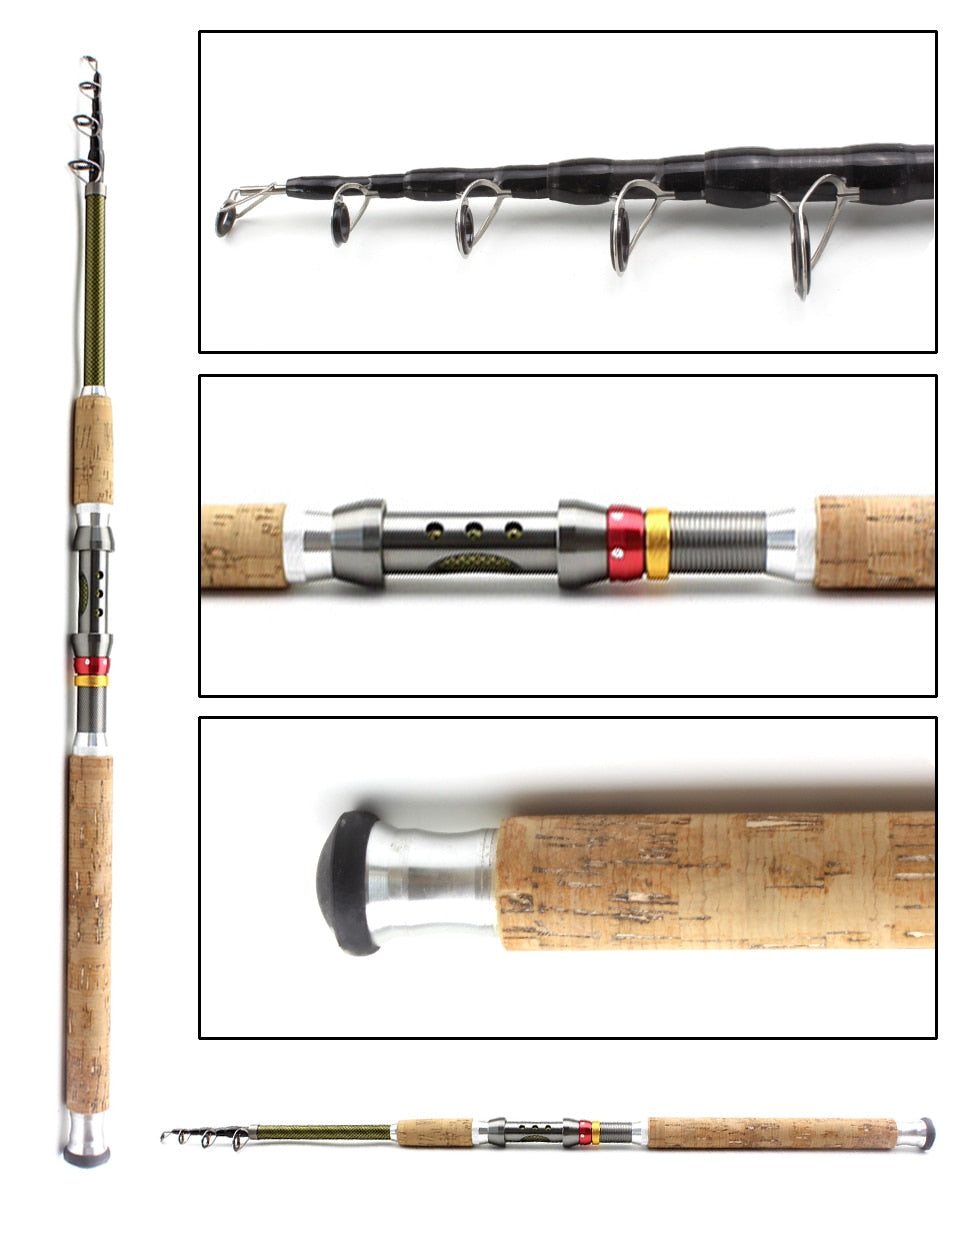 NEW ARRIVAL... 2.1m 2.4m 2.7m 3.0m 3.6m Telescopic Fishing Rod carbon wooden handle Spinning Rod Extra heavy carp fishing pole